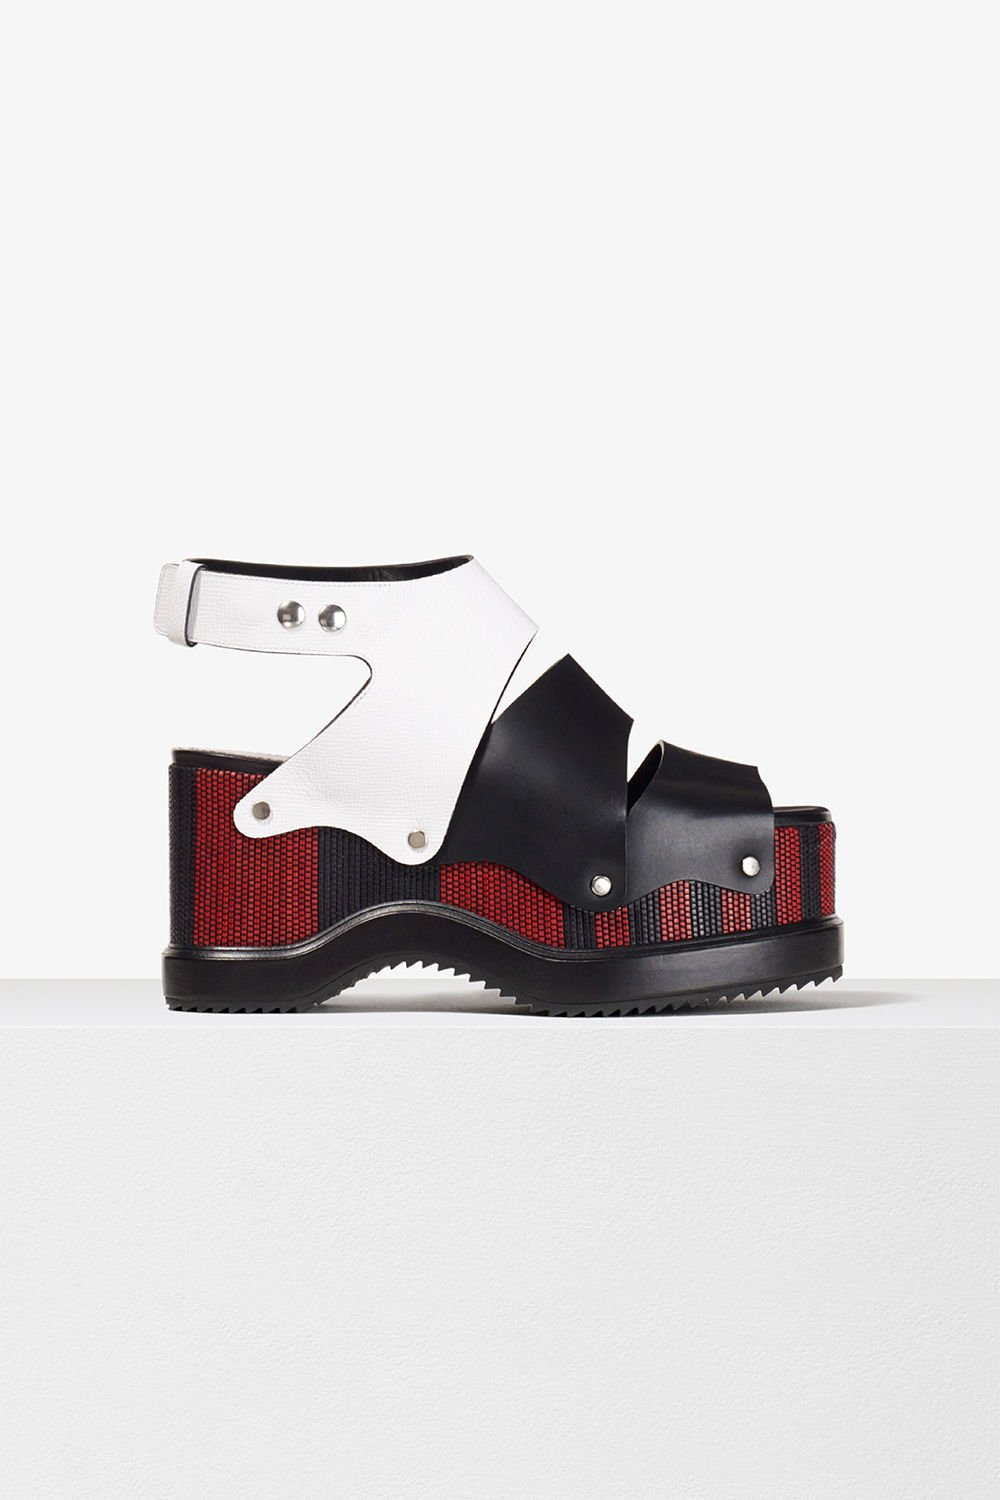 proenza schouler spring 2017 black white red woven leather stud platform sandal